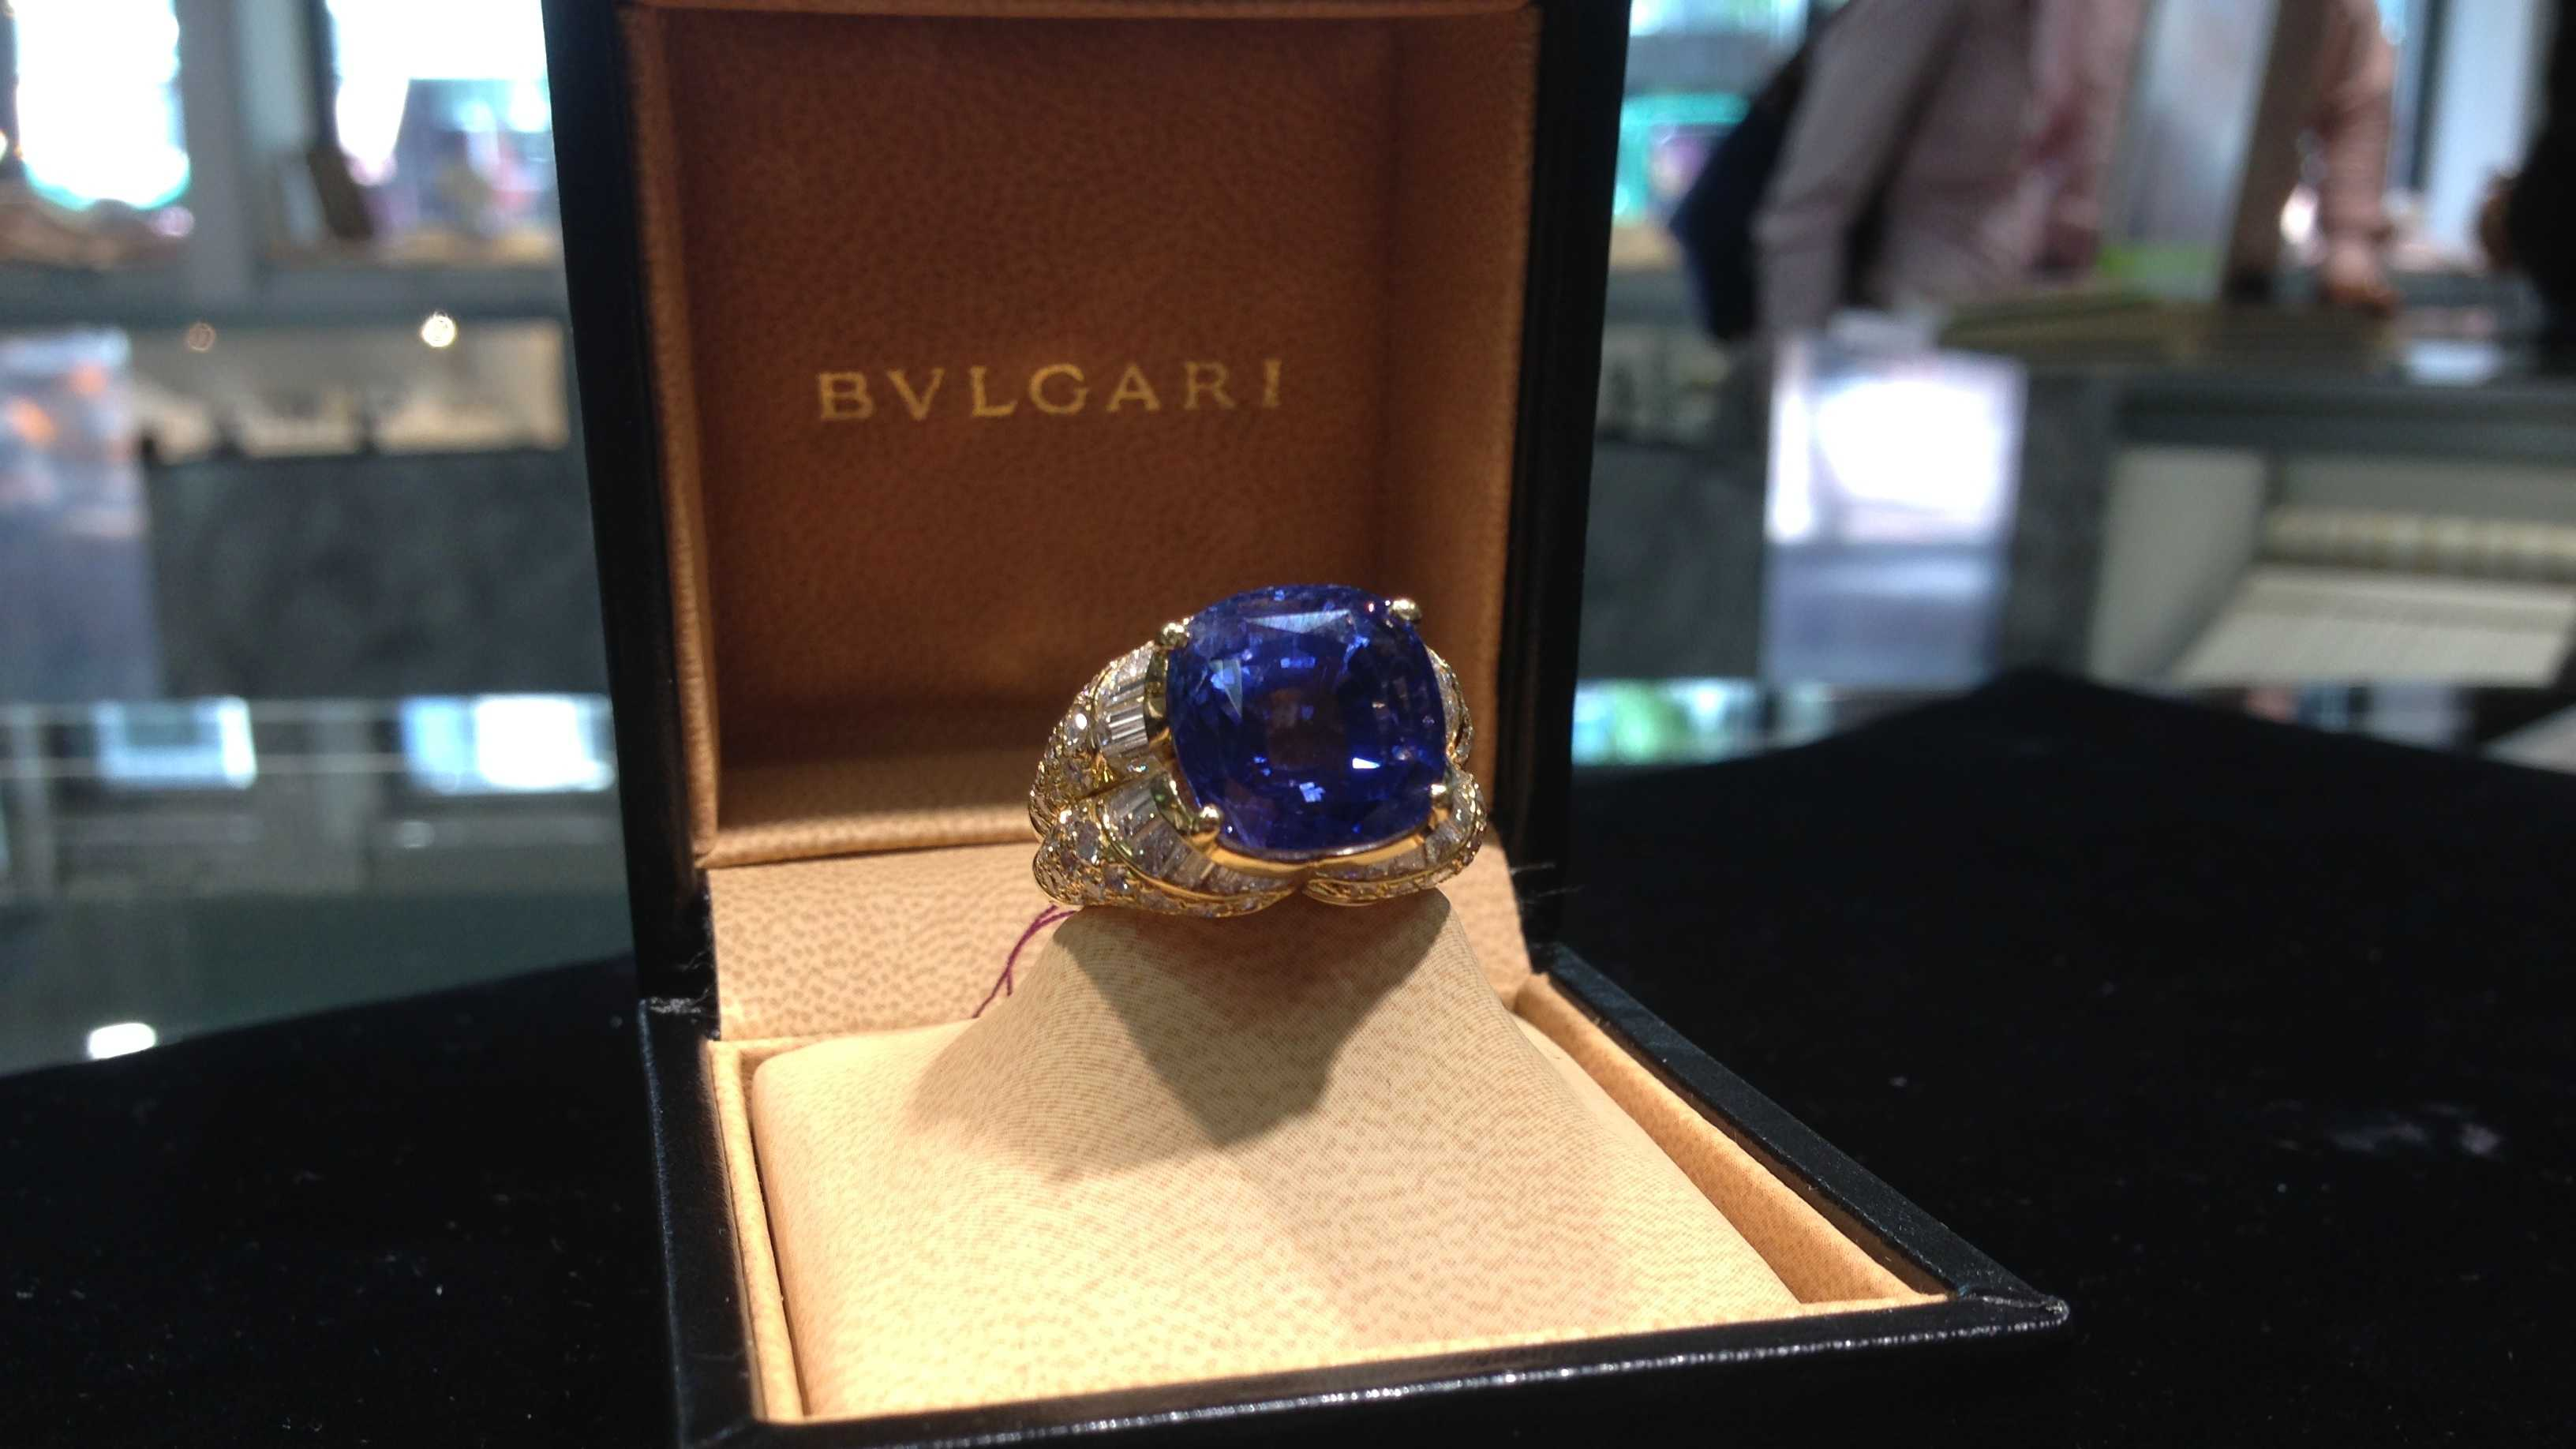 This 14-carat sapphire and gold ring is part of a large collection of unusual estate jewelry featured this weekend at Lippa's.